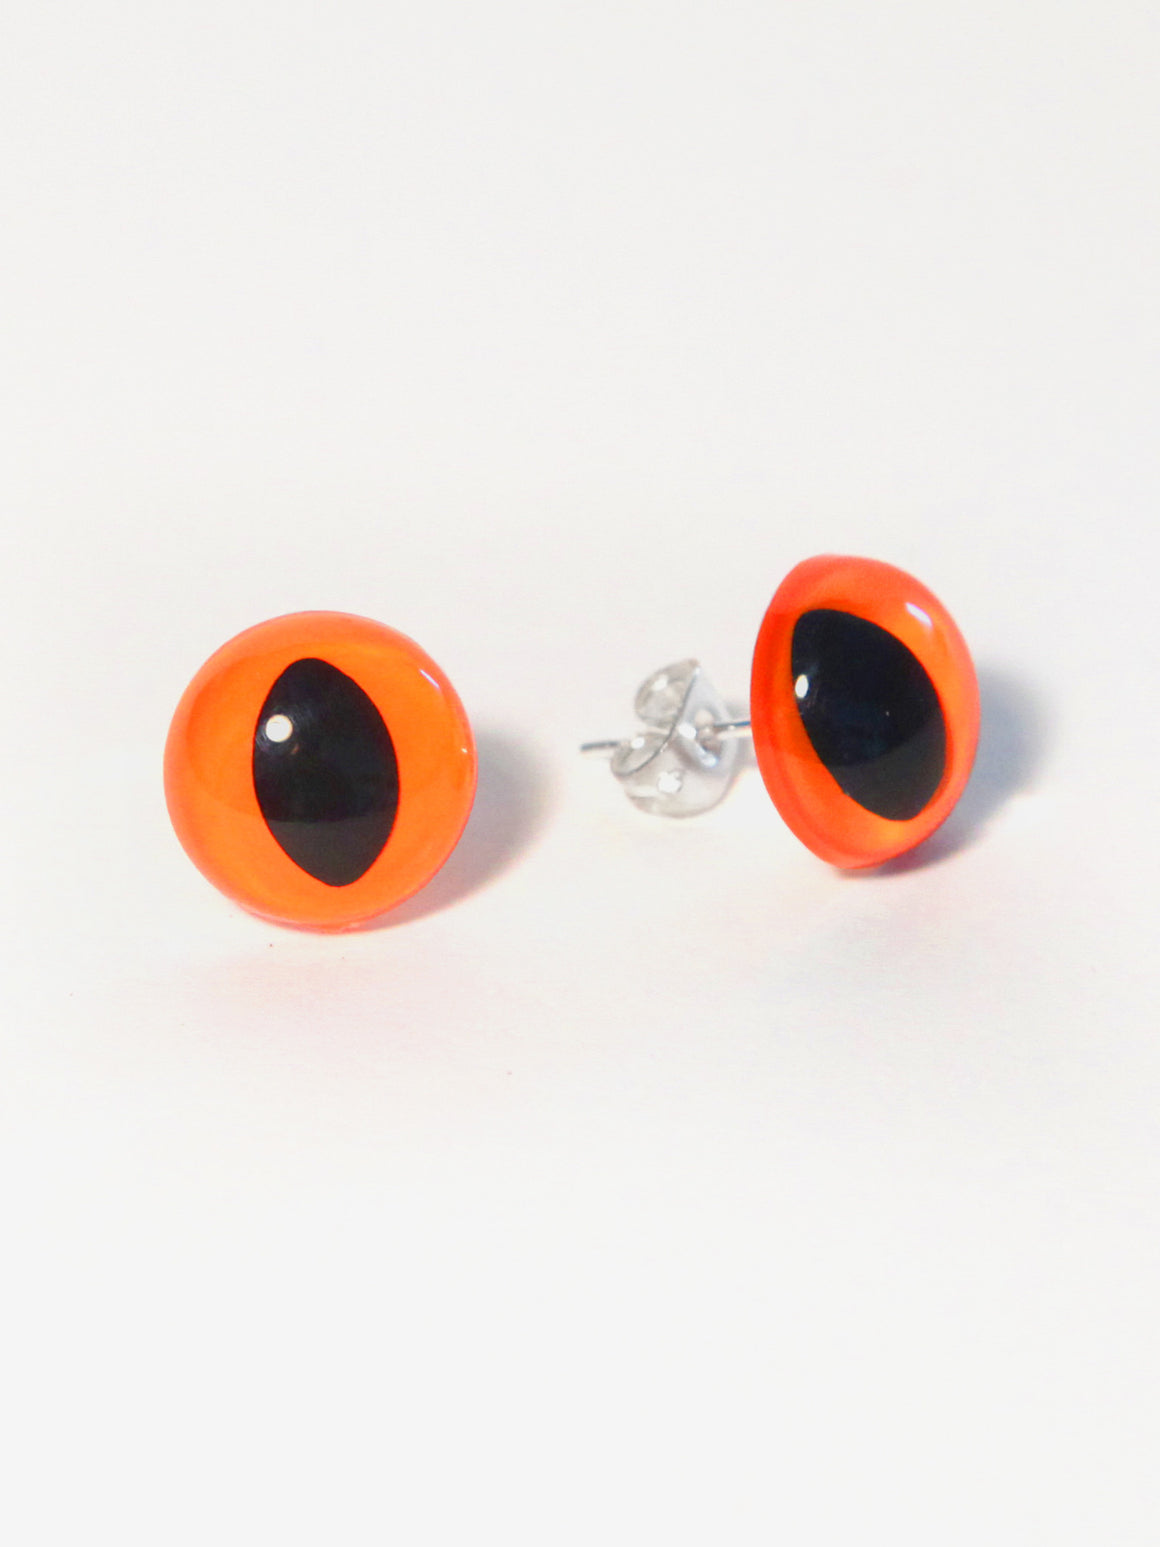 Neon Orange Eye Earrings